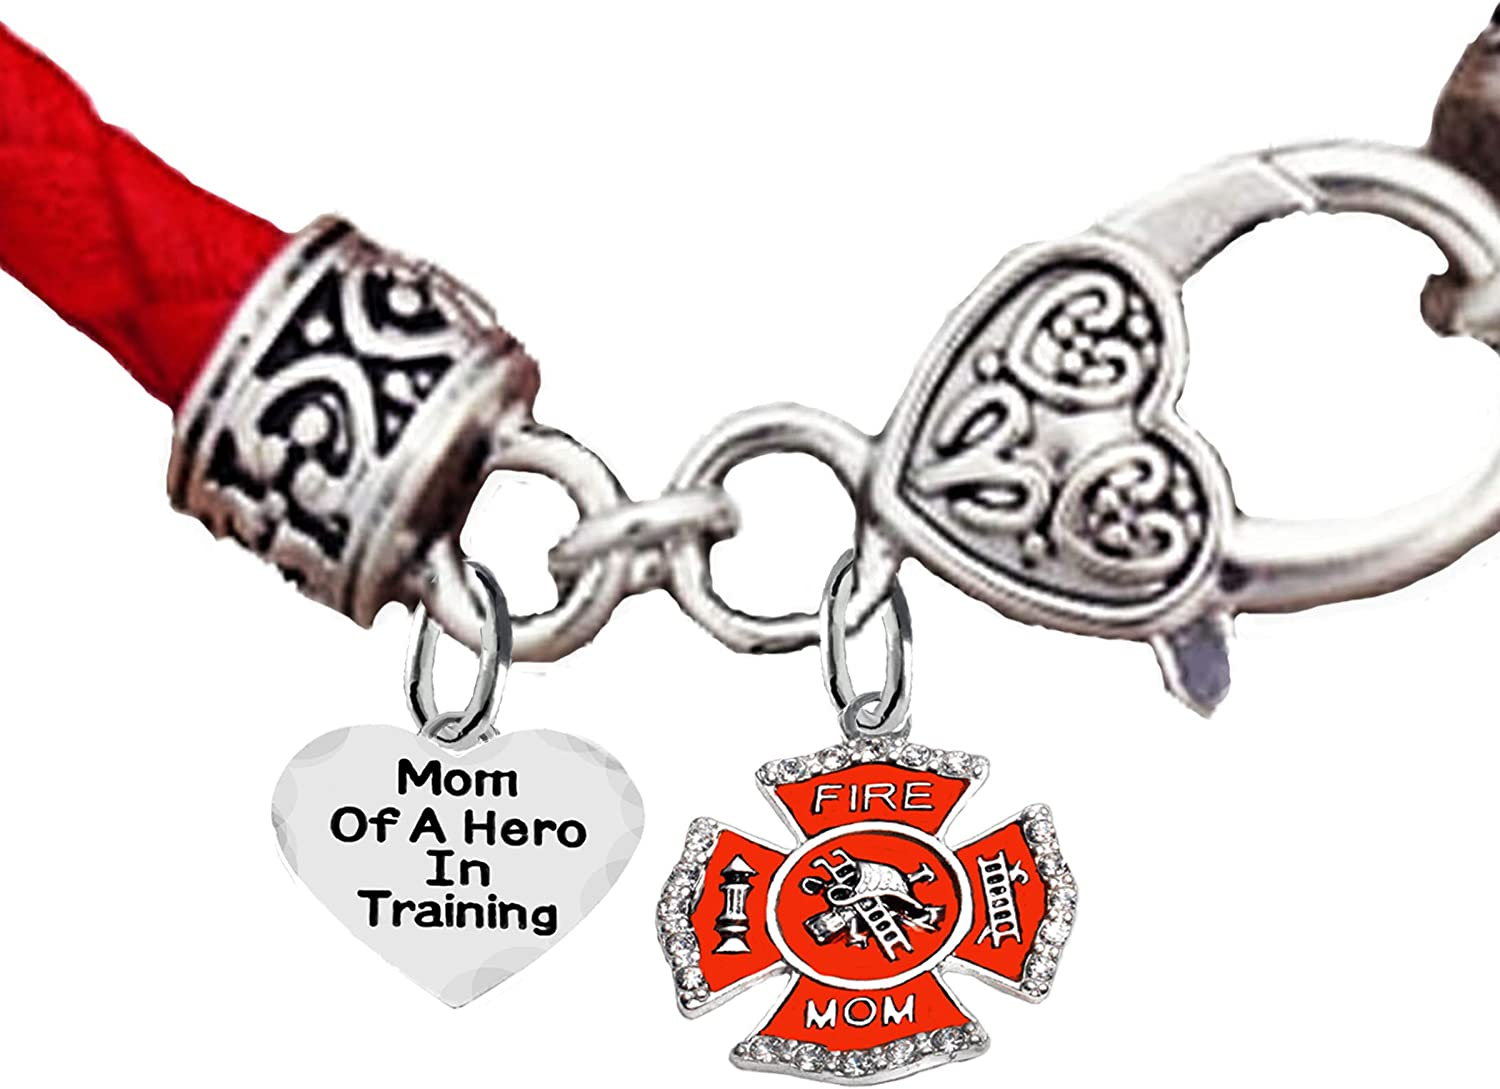 Cardinali Jewelry Firefighter On A Antique Wheat Chain Bracelet Hypoallergenic Safe-Nickel Fire Department Charm Lead and Cadmium Free Wife of A Hero in Training